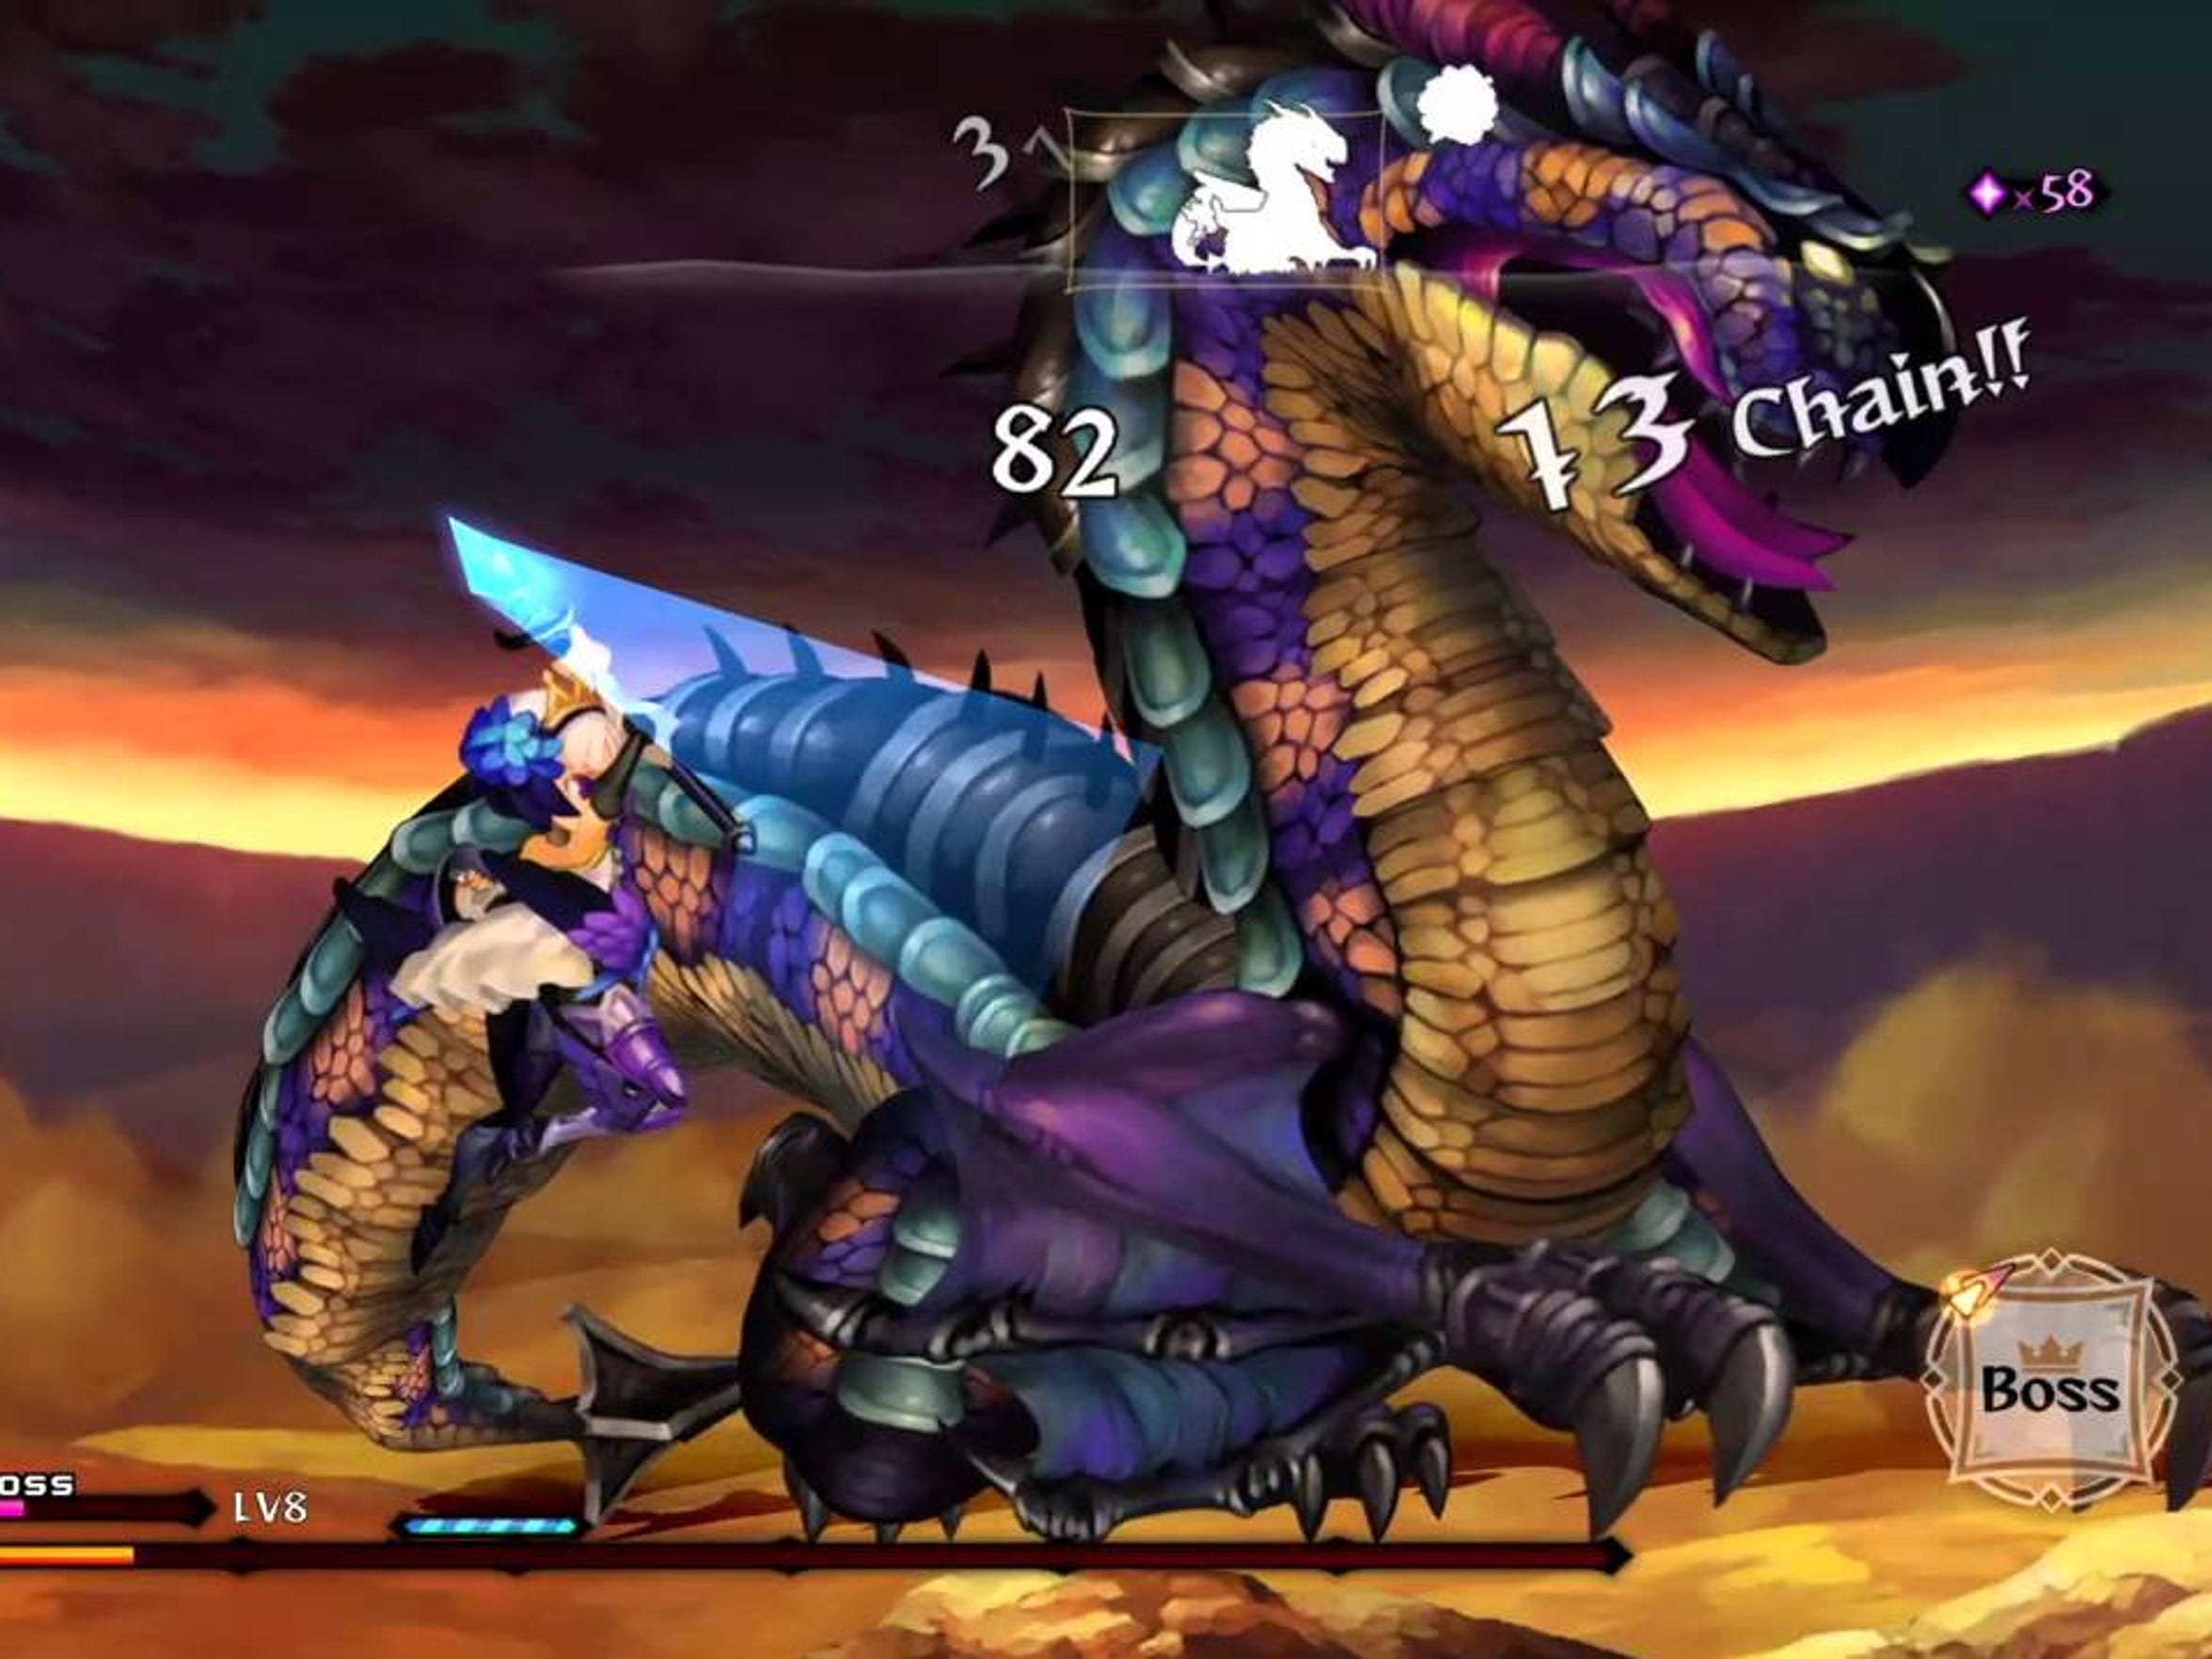 Hectic boss fights are part and parcel of Odin Sphere